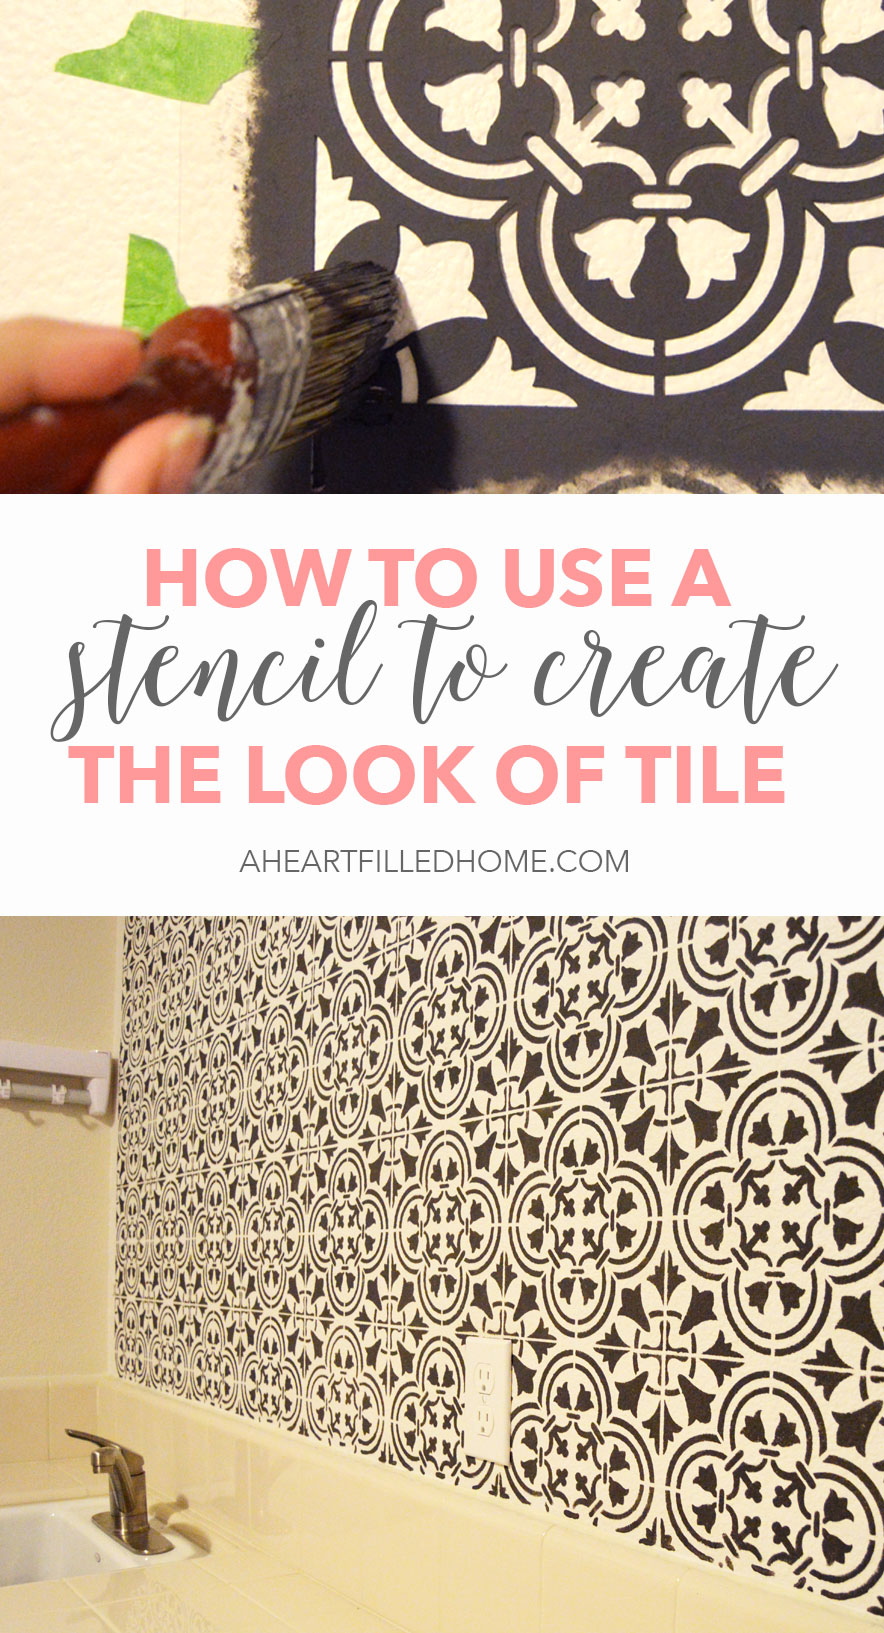 How to use a stencil to create the look of tile. This is such a budget friendly way to create a bold accent wall in your home!